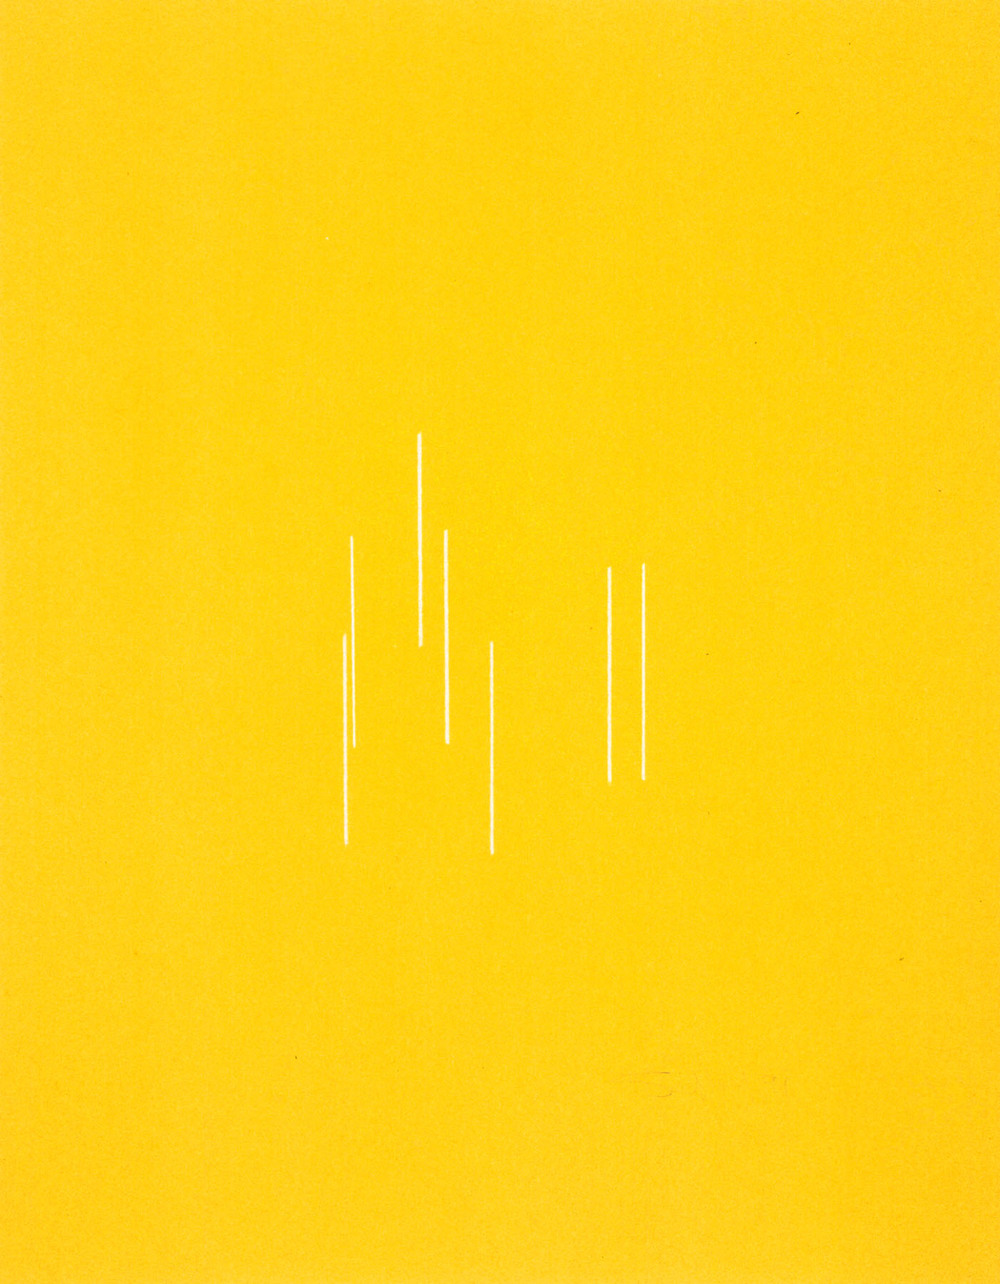 Fred Sandback Untitled 1991 colored pencil on yellow paper 11 x 8 1/2 inches